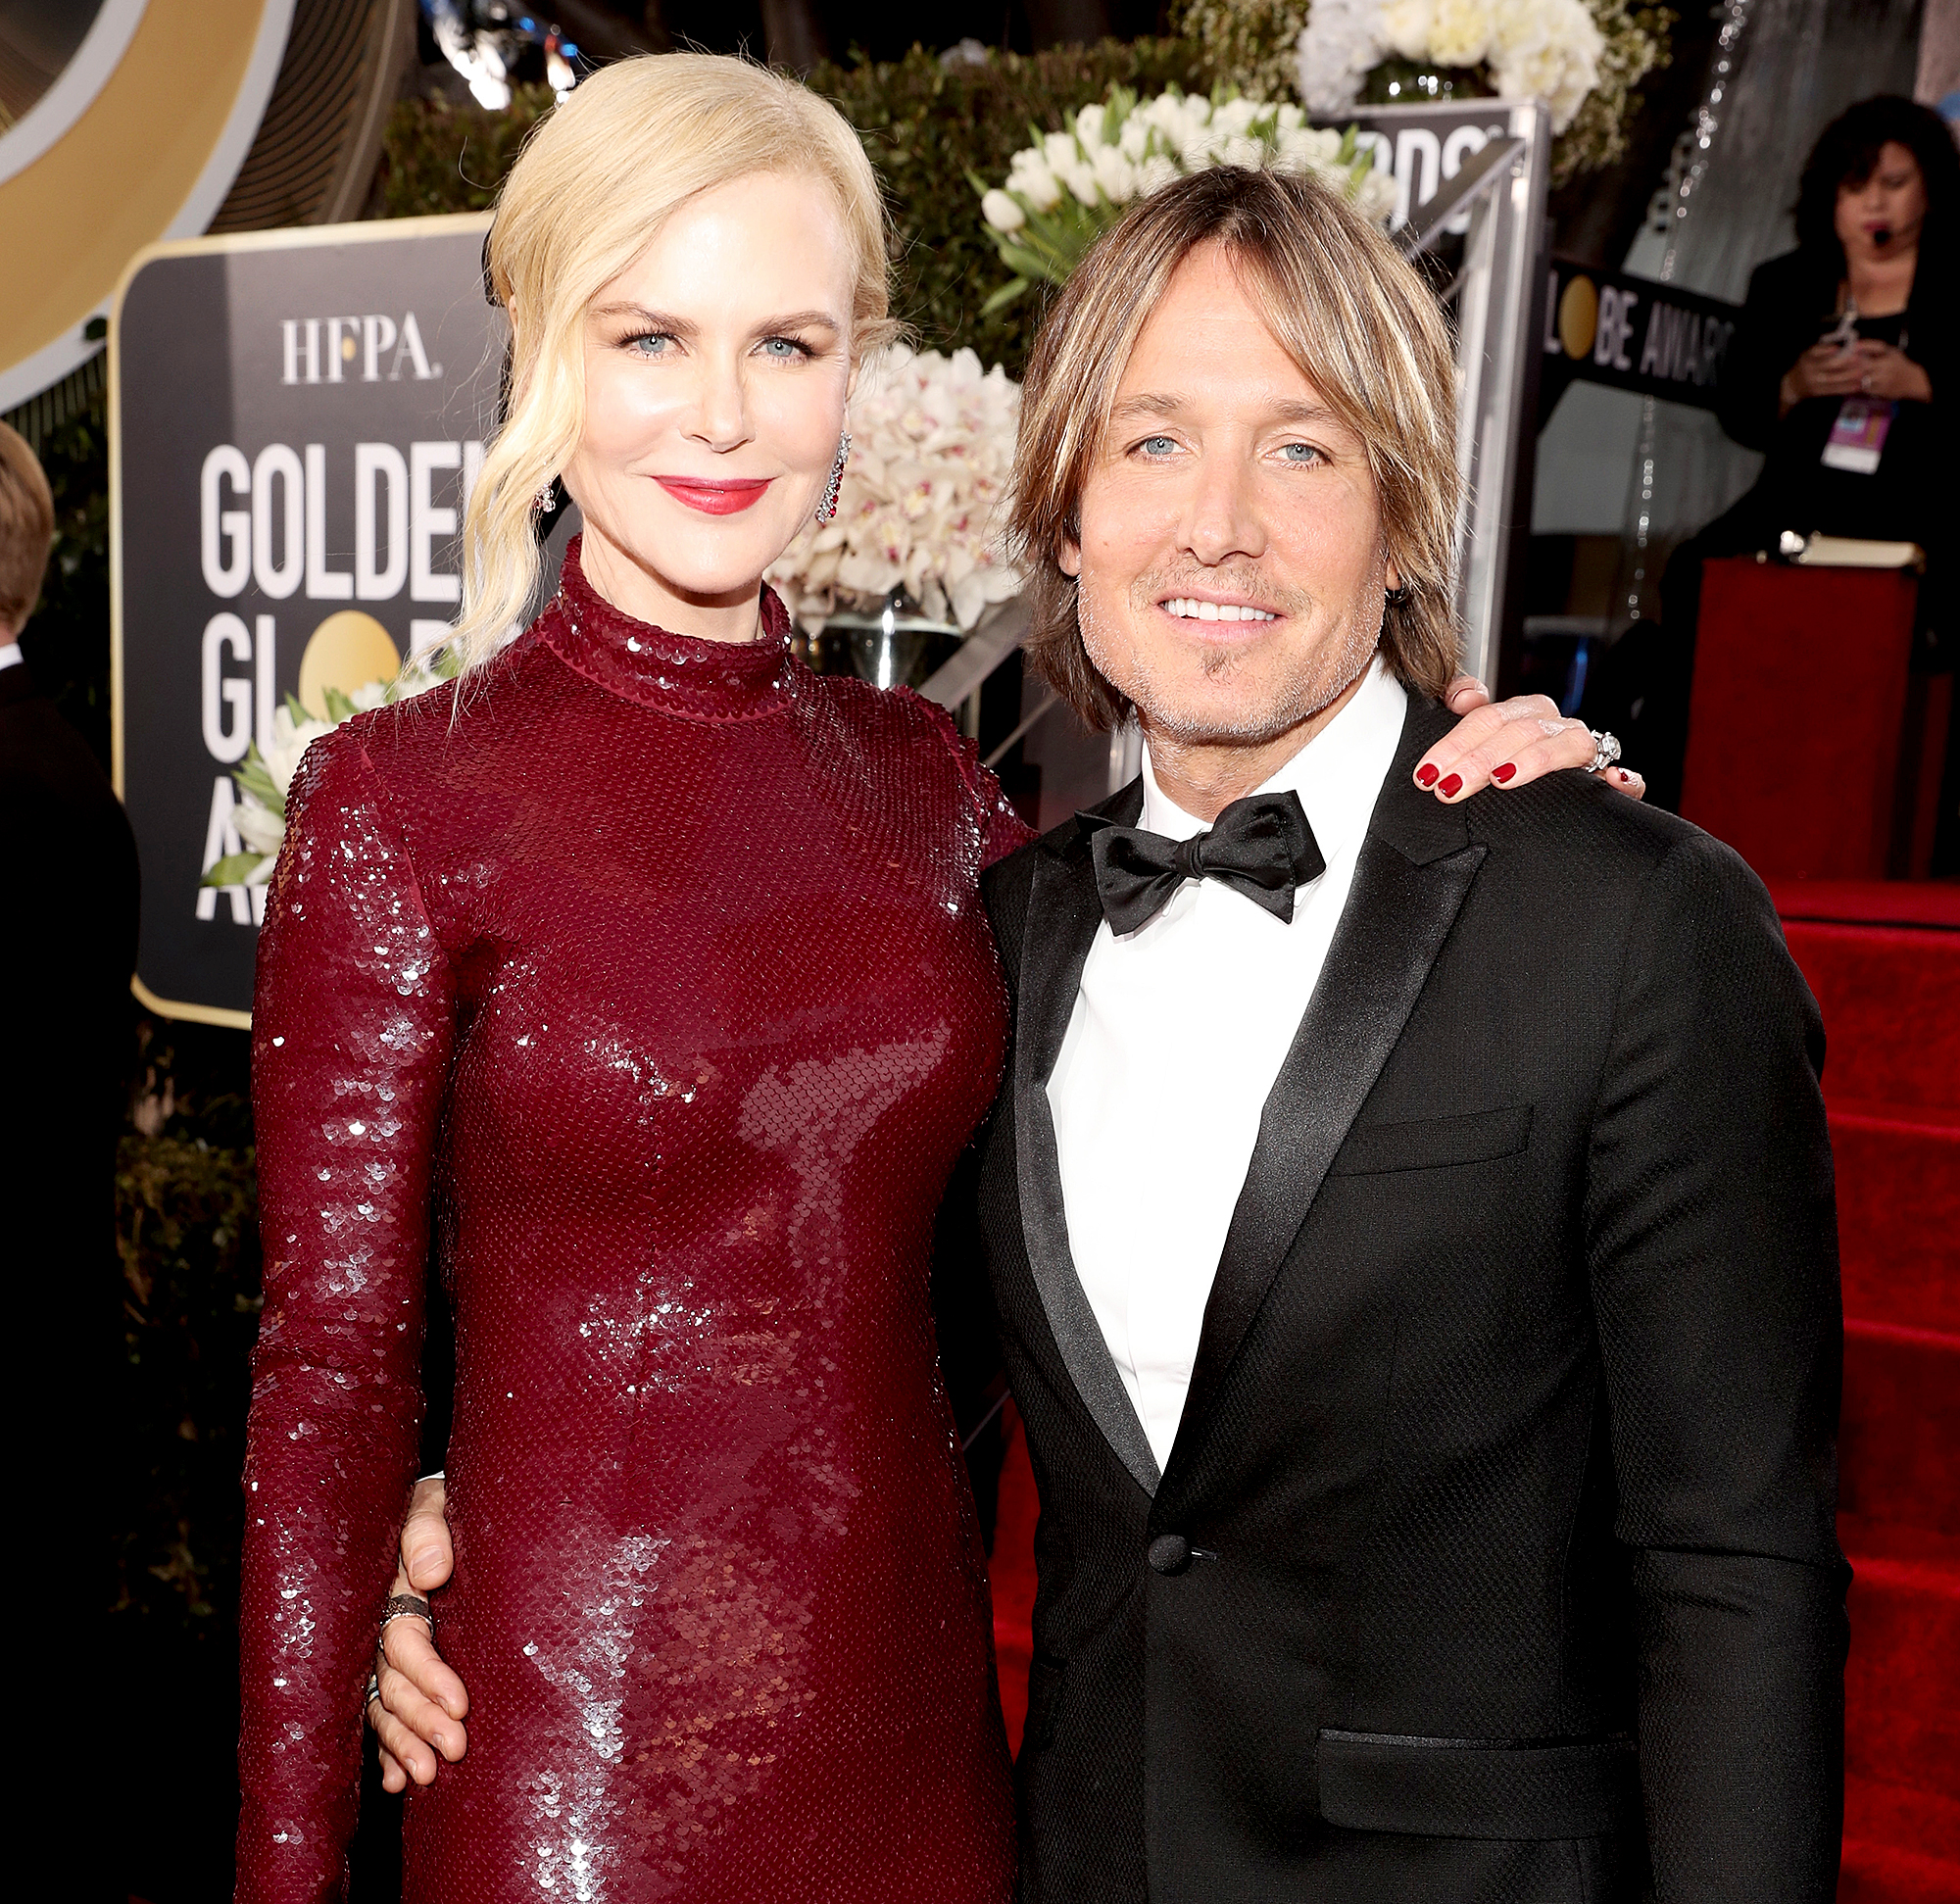 Nicole-Kidman-Keith-Urban - Nicole Kidman and Keith Urban arrive to the 76th Annual Golden Globe Awards held at the Beverly Hilton Hotel on January 6, 2019.